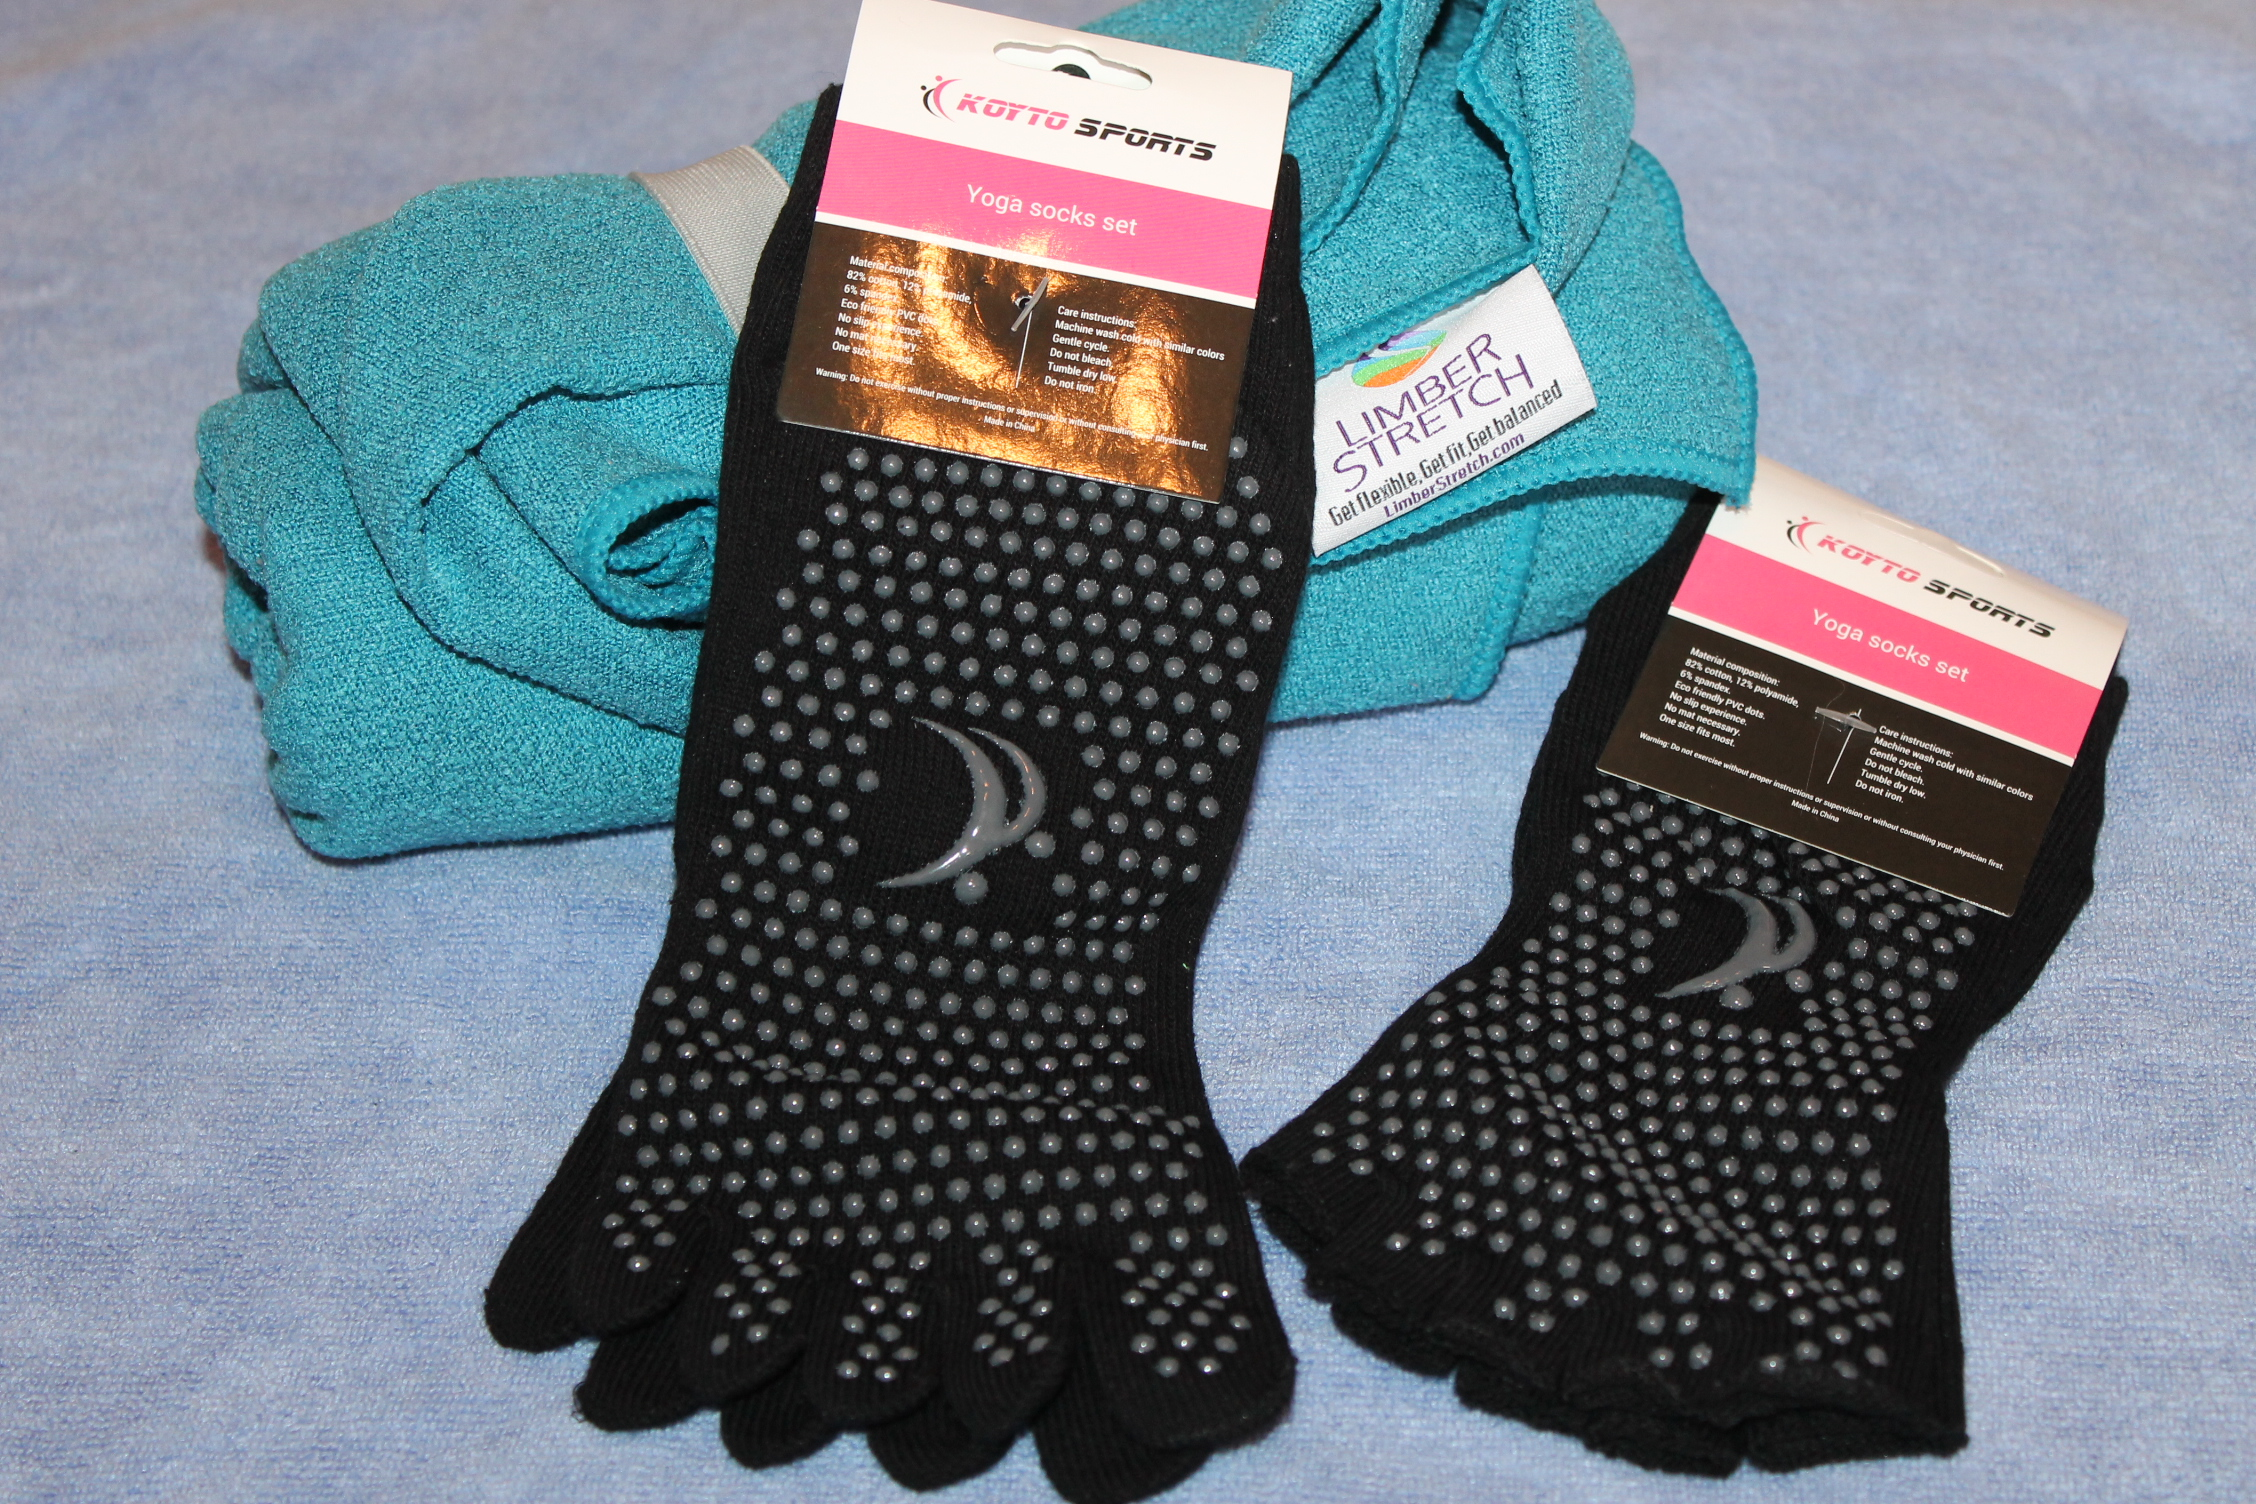 Koyto Sports Yoga Socks